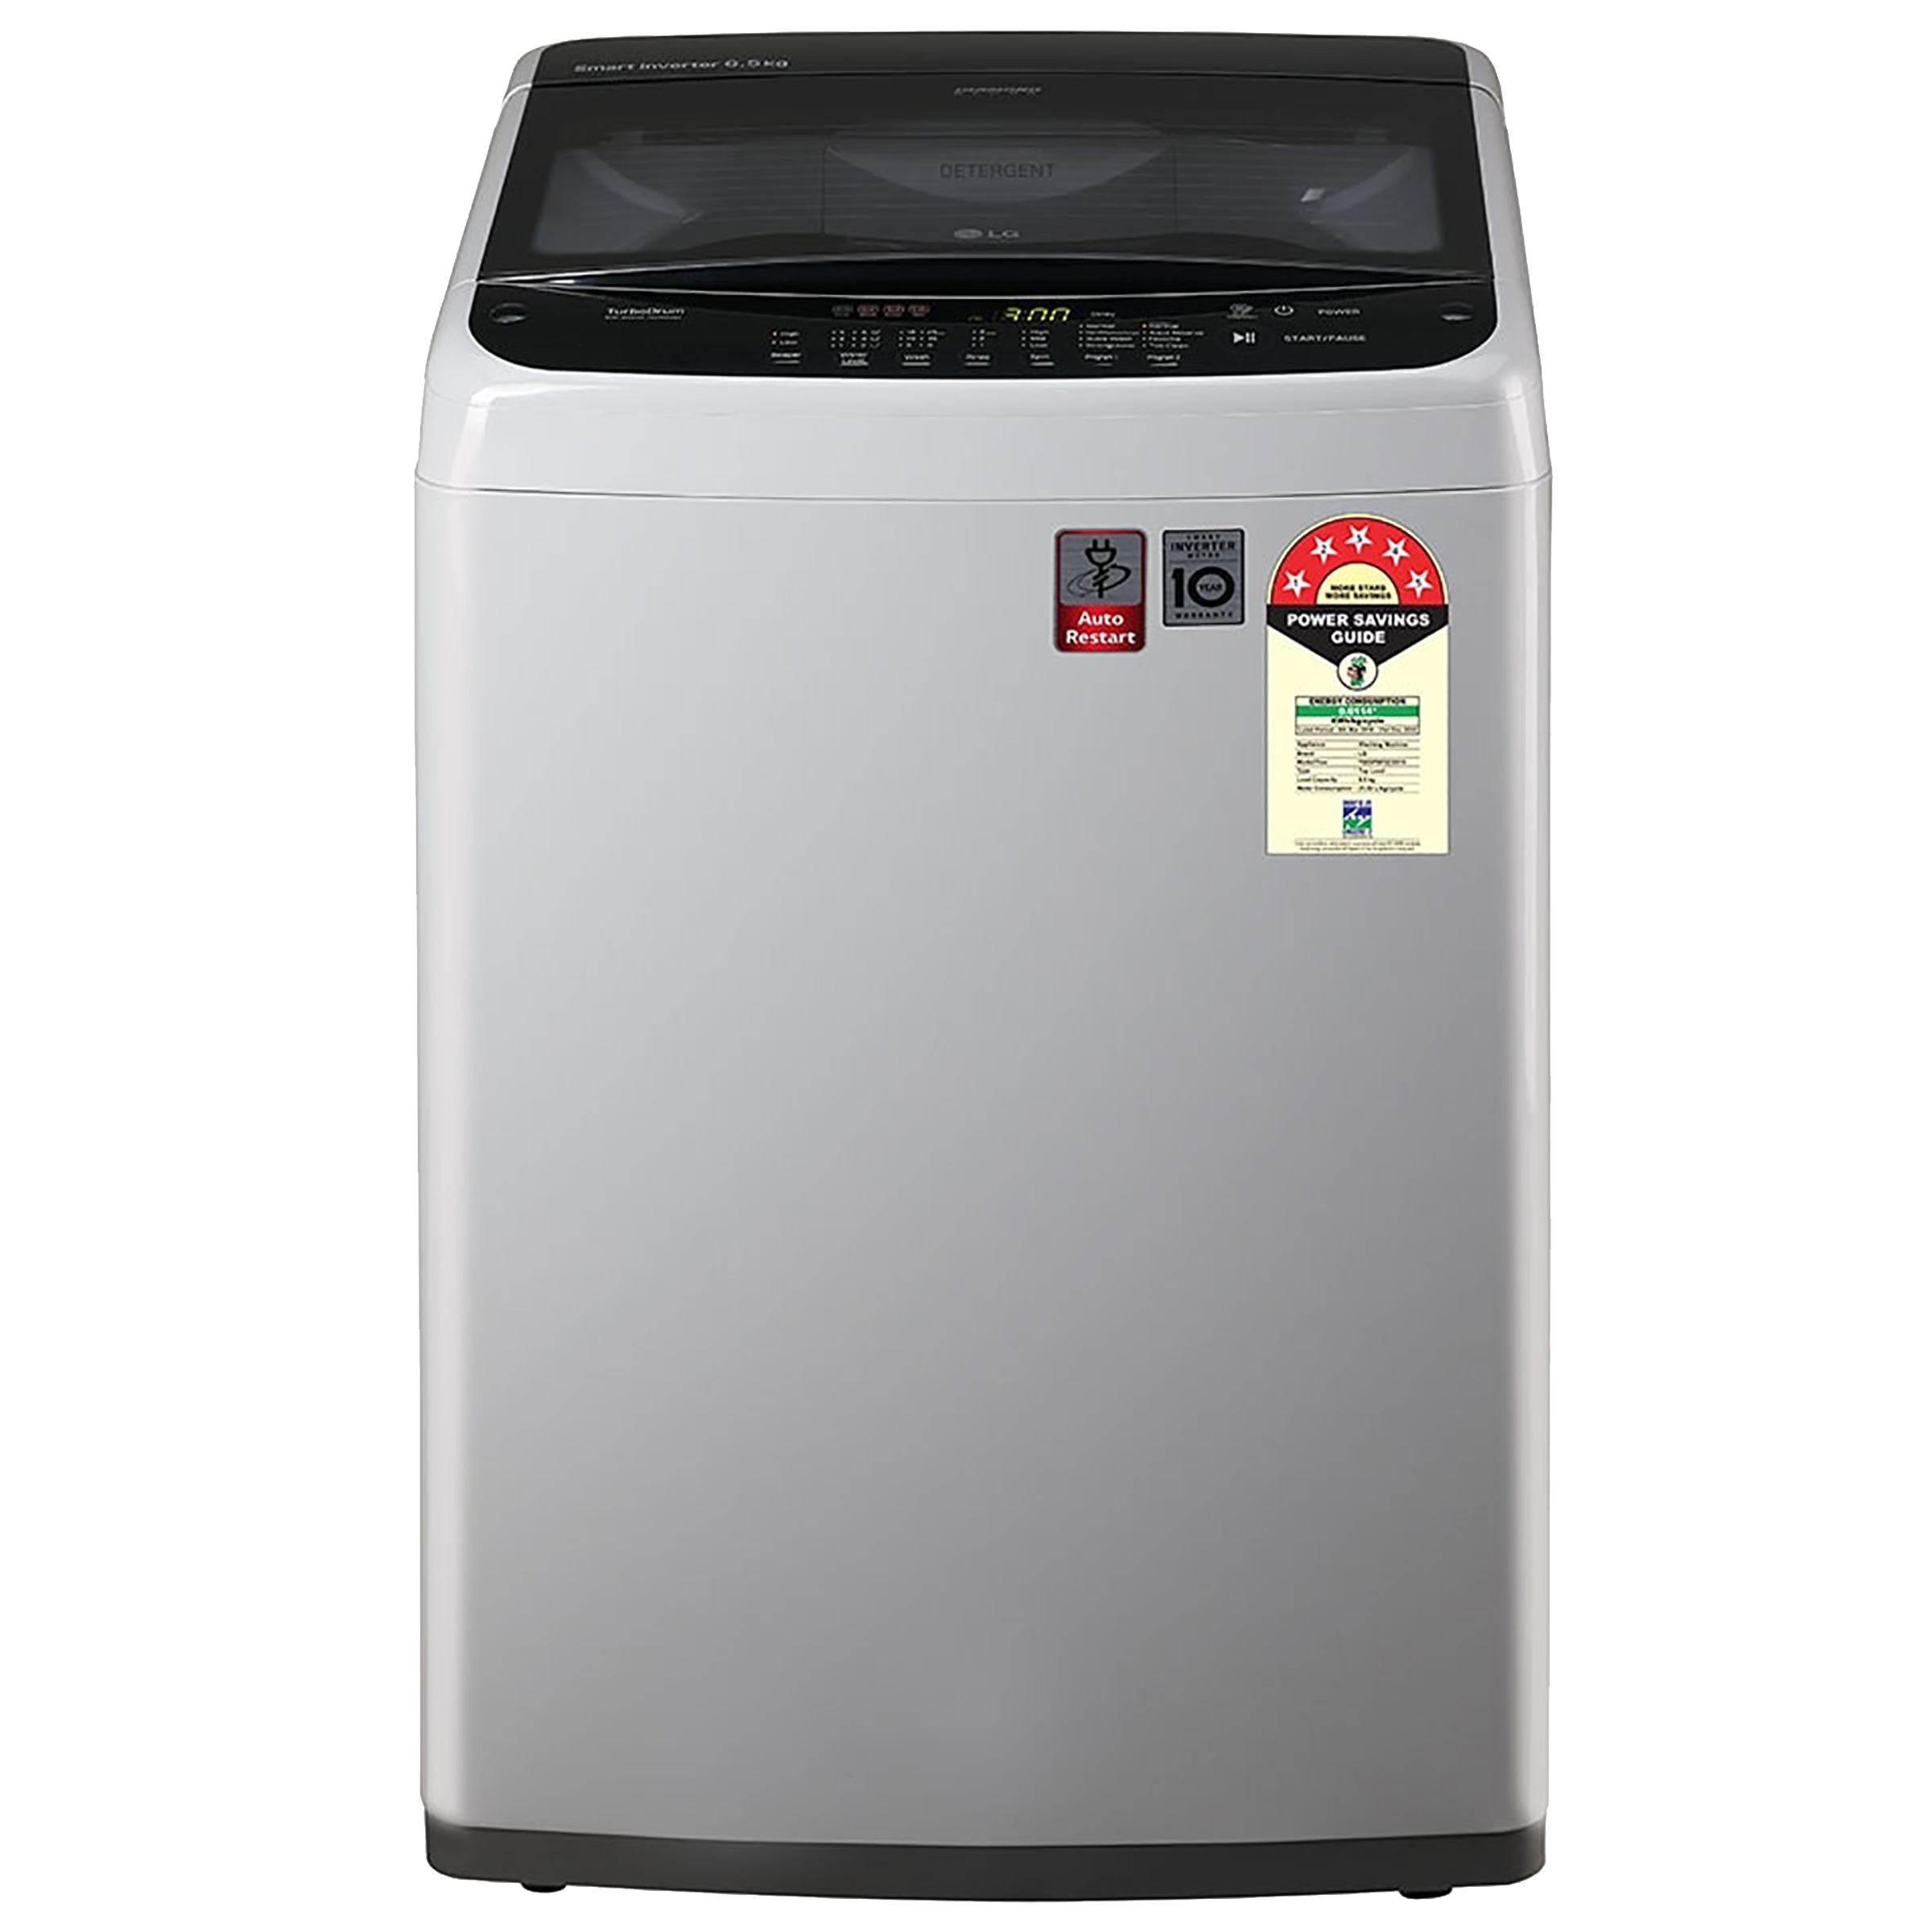 LG 6.5 kg 5 Star Fully Automatic Top Load Washing Machine (Smart Inverter Technology, T65SPSF2Z, Middle Free Silver)_1